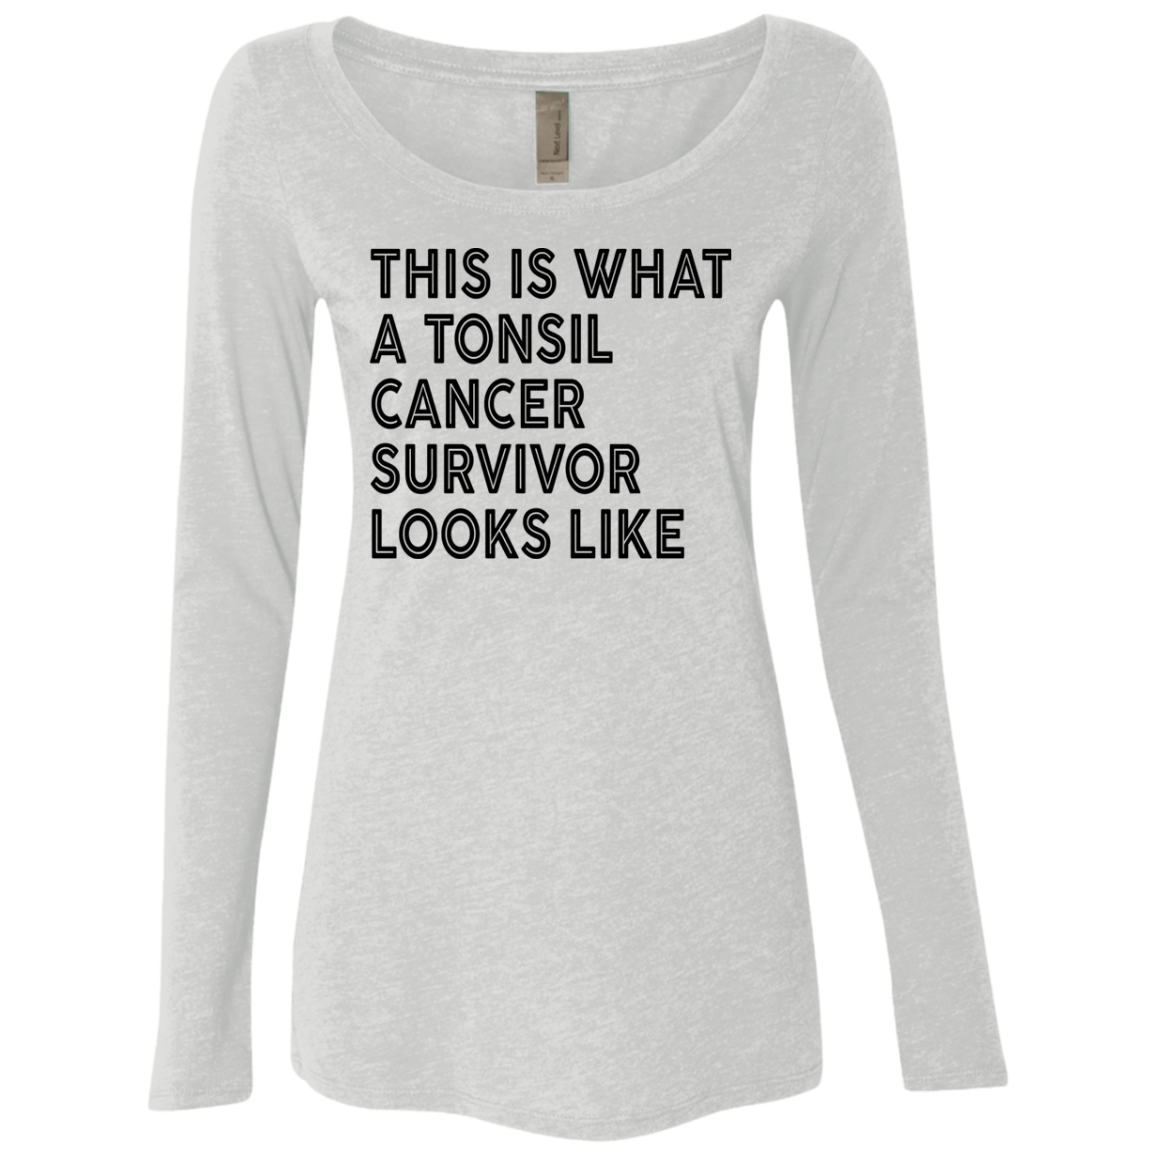 This Is What A Tonsil Cancer Survivor Looks Like Women's Long Sleeve Tee